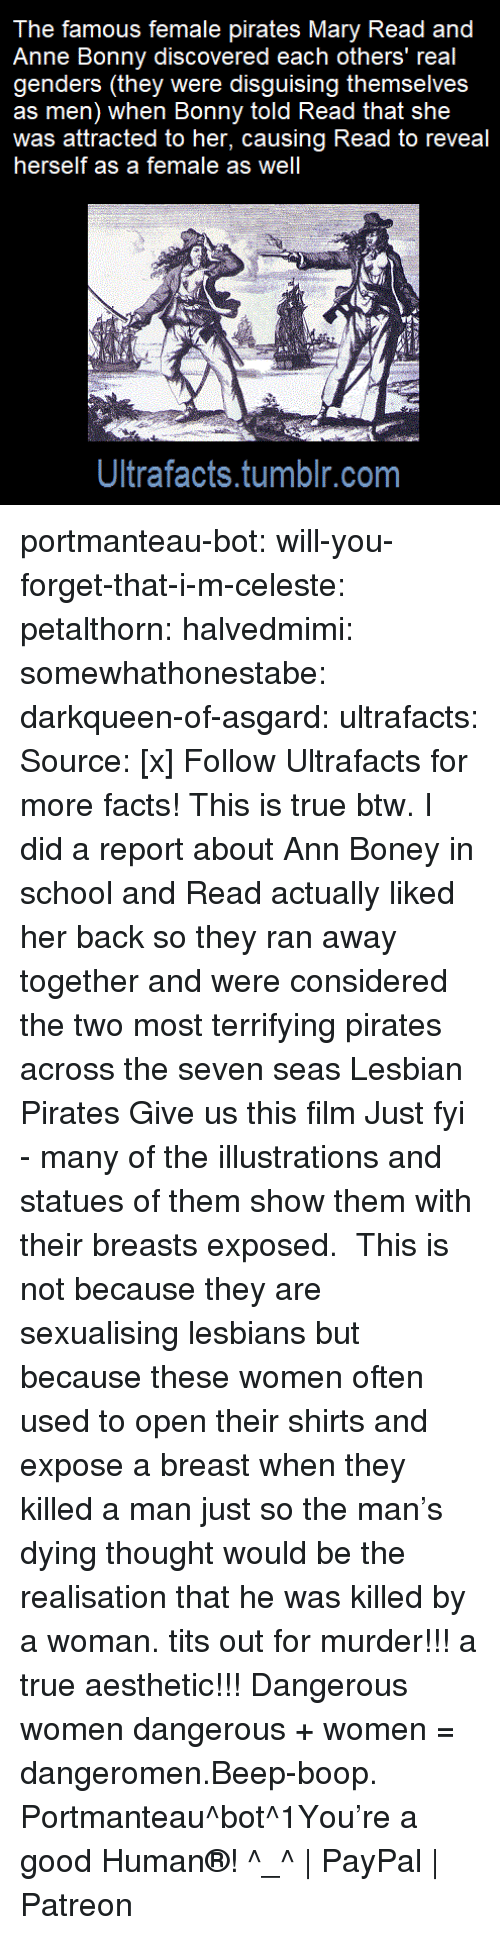 Sexualising: The famous female pirates Mary Read and  Anne Bonny discovered each others' real  genders (they were disguising themselves  as men) when Bonny told Read that she  was attracted to her, causing Read to reveal  herself as a female as well  Ultrafacts.tumblr.com portmanteau-bot:  will-you-forget-that-i-m-celeste:  petalthorn: halvedmimi:  somewhathonestabe:  darkqueen-of-asgard:   ultrafacts:  Source: [x] Follow Ultrafacts for more facts!   This is true btw. I did a report about Ann Boney in school and Read actually liked her back so they ran away together and were considered the two most terrifying pirates across the seven seas   Lesbian Pirates  Give us this film  Just fyi - many of the illustrations and statues of them show them with their breasts exposed. This is not because they are sexualising lesbians but because these women often used to open their shirts and expose a breast when they killed a man just so the man's dying thought would be the realisation that he was killed by a woman.    tits out for murder!!! a true aesthetic!!!   Dangerous women   dangerous + women = dangeromen.Beep-boop. Portmanteau^bot^1You're a good Human®! ^_^   PayPal   Patreon